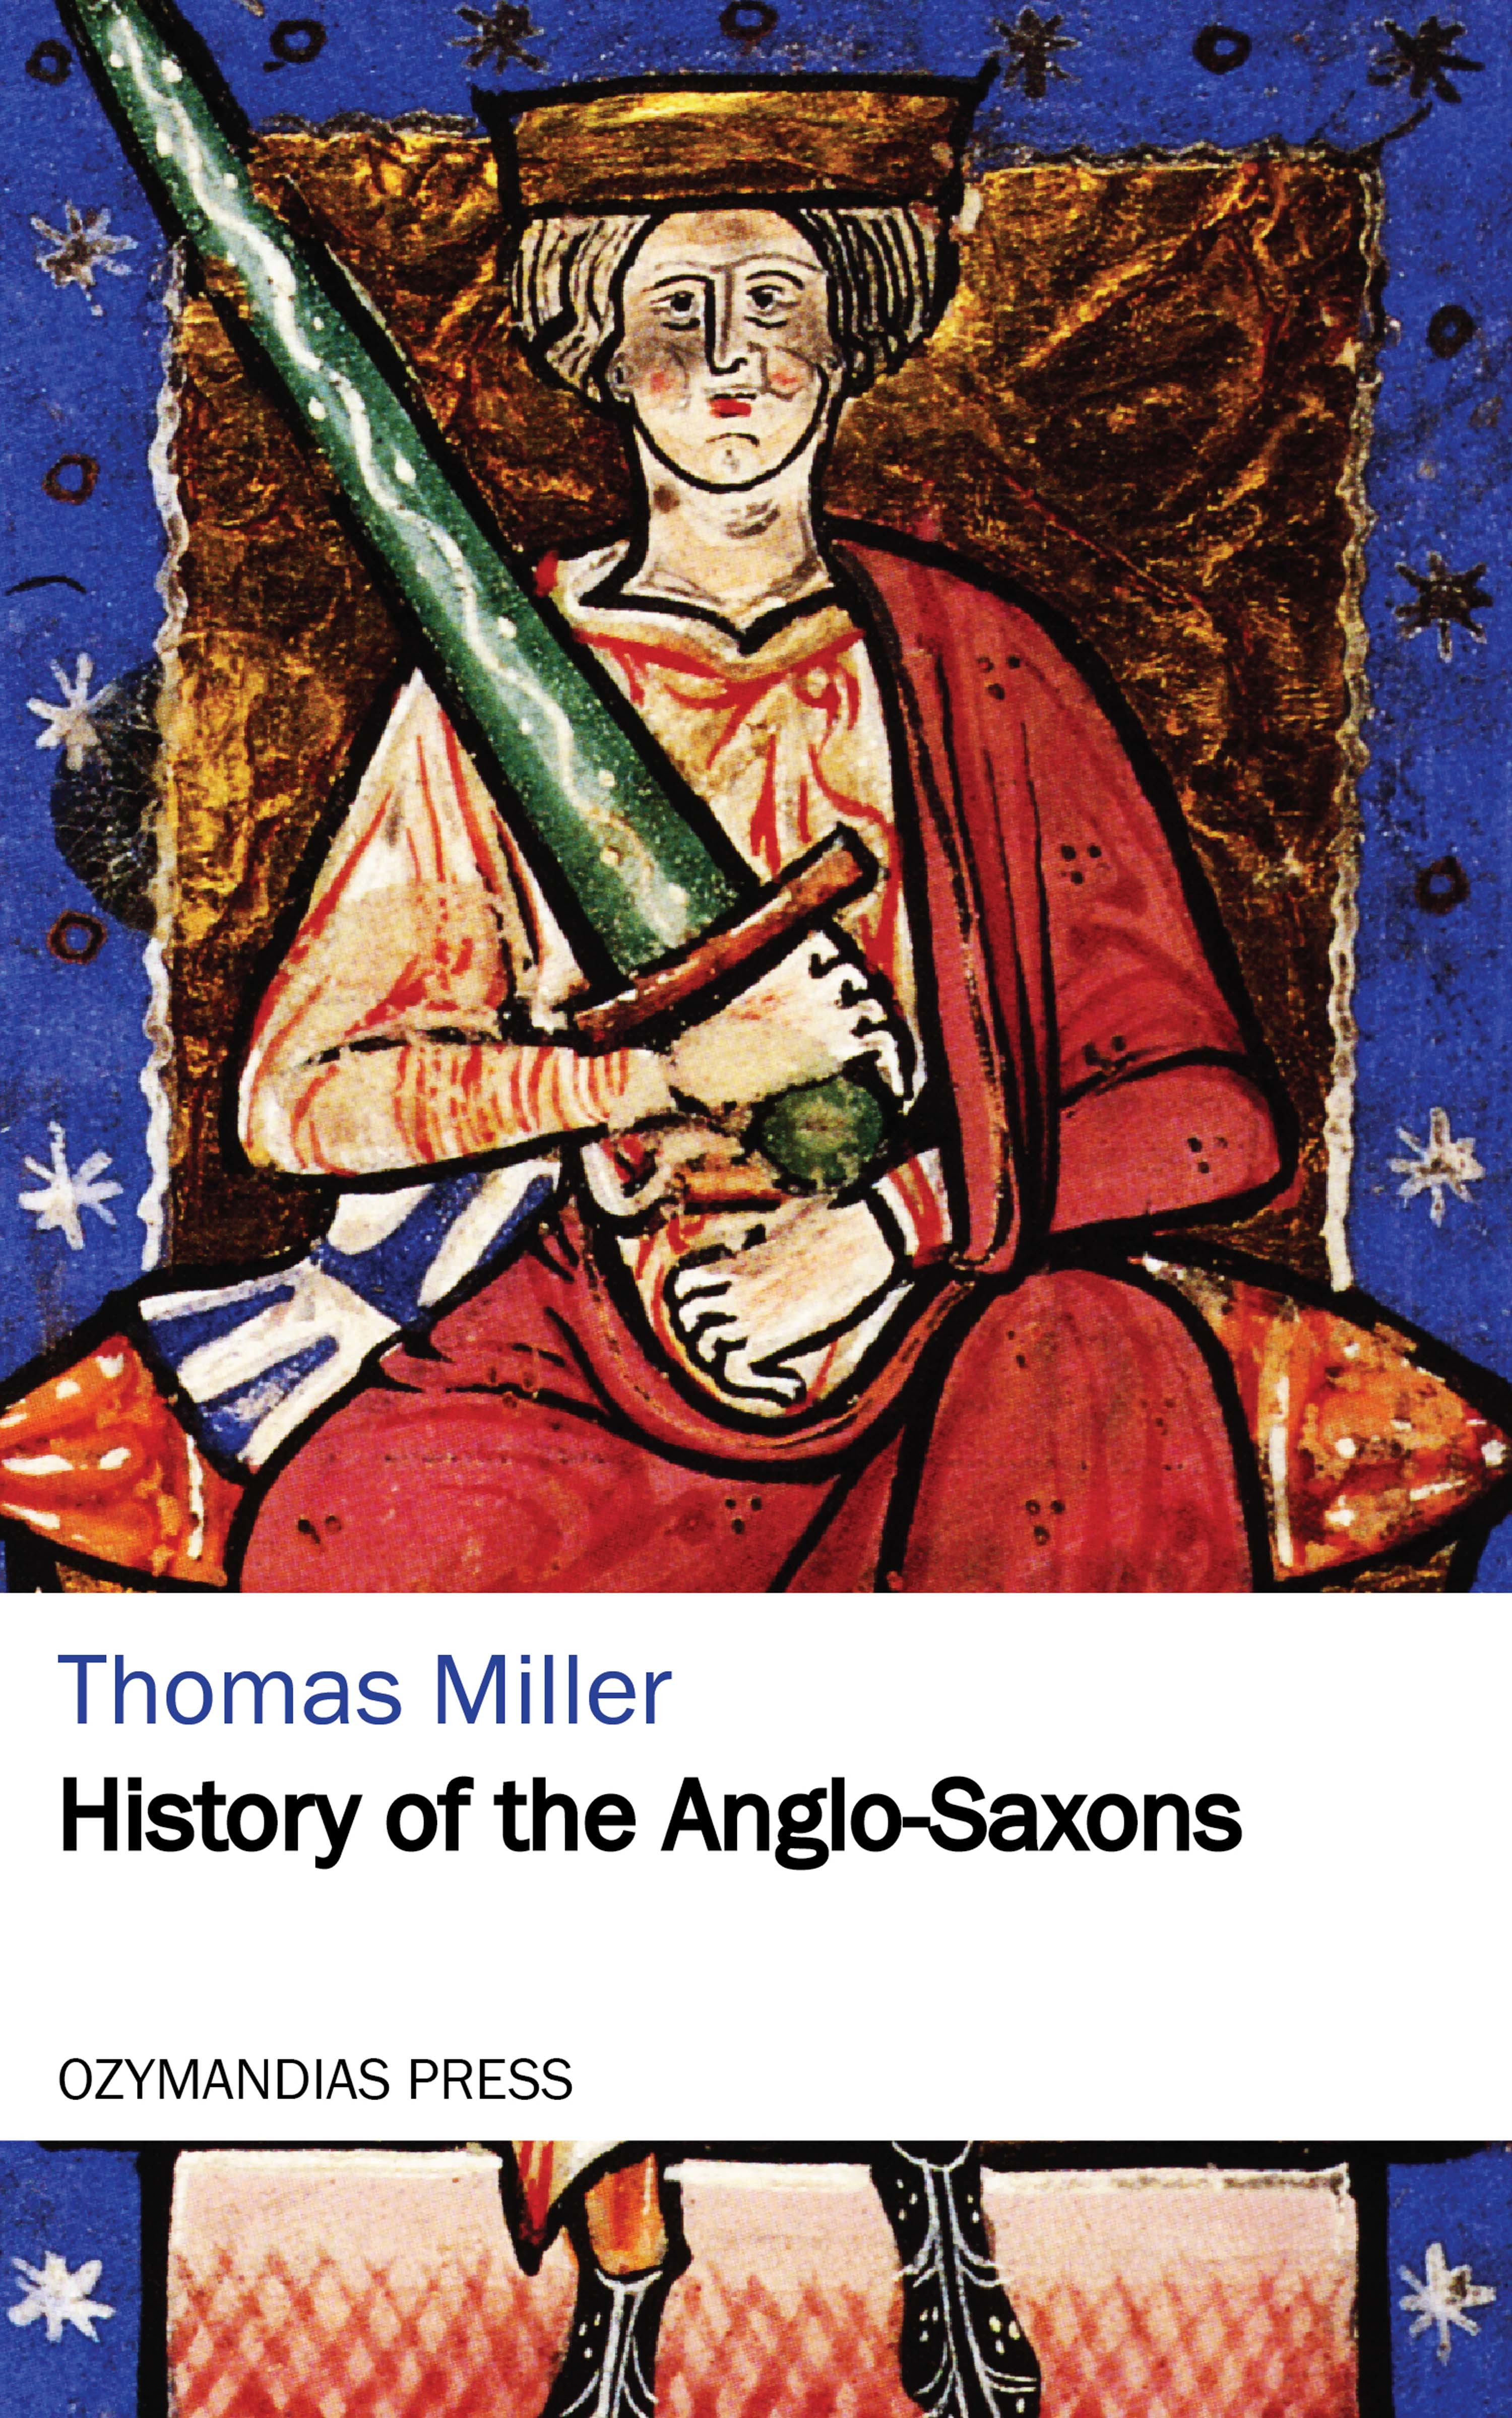 Thomas Miller History of the Anglo-Saxons